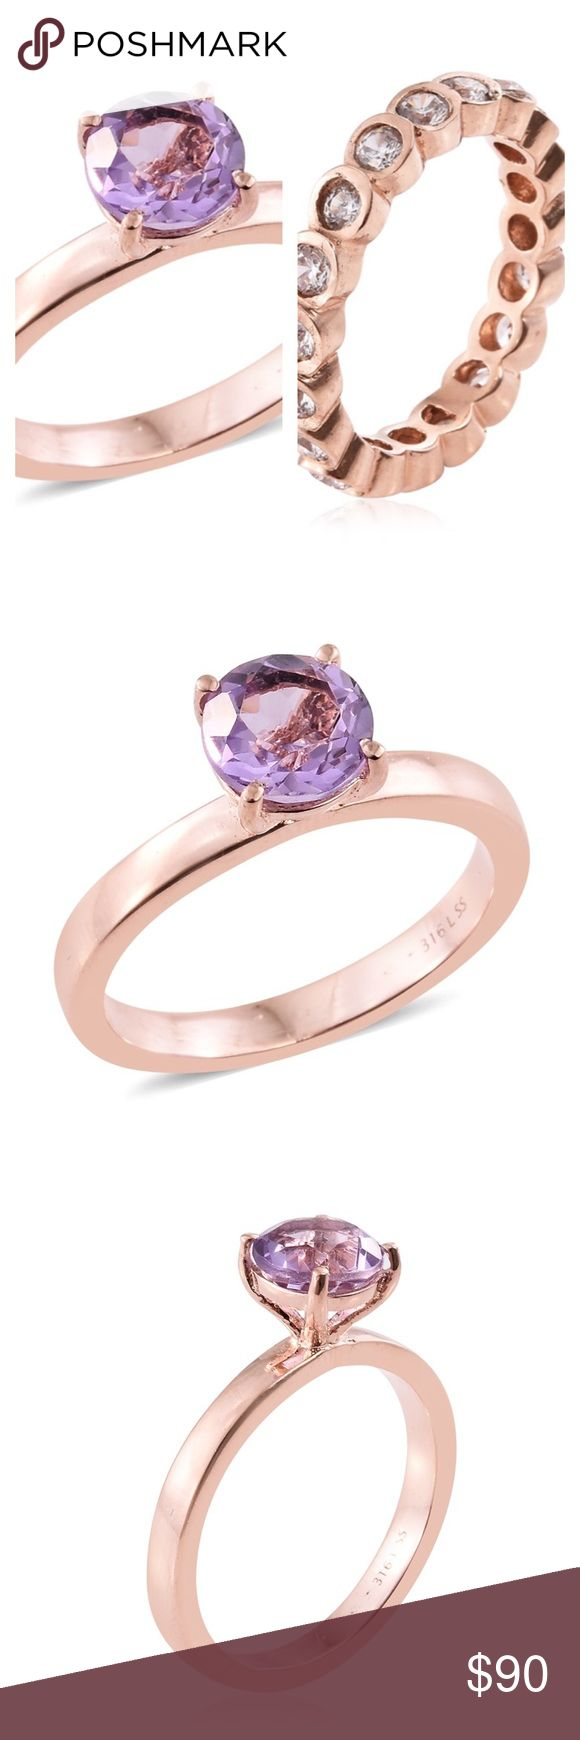 Rose de France Amethyst Ring Set Size 6 Rosegold Embellish your looks with this set of two dazzling prong setting band and eternity ring. This set of jewelry pieces feature Rose De France amethyst ring and simulated diamond ring. Set in a frame of ion plated rose gold over stainless steel, these enchanting rings will take your fashion quotient to new heights.  Finish ION Plated 18K RG Total Stone Weight (Carat) 4.450 2183 Brazilian Pink Amethyst artisan Jewelry Rings